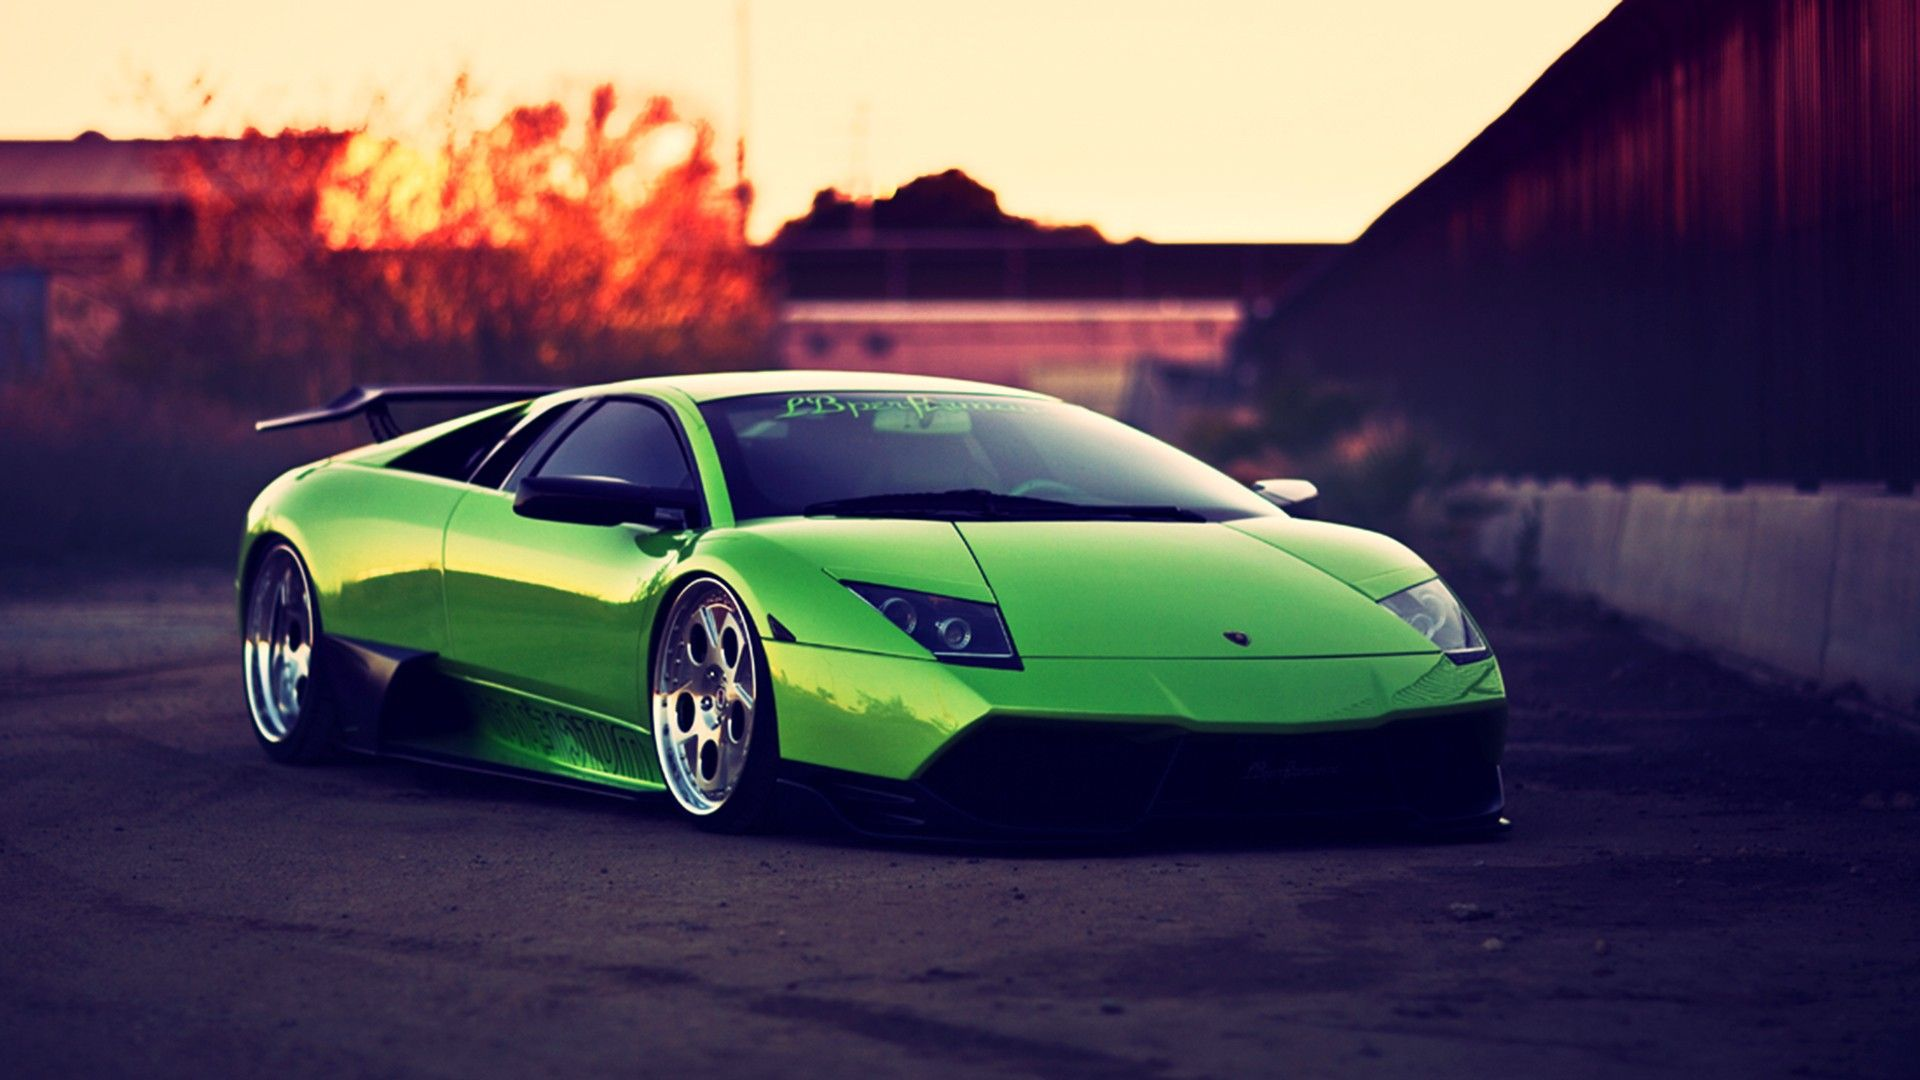 Lamborghini Wallpaper | cars | Pinterest | Lamborghini, Green ...